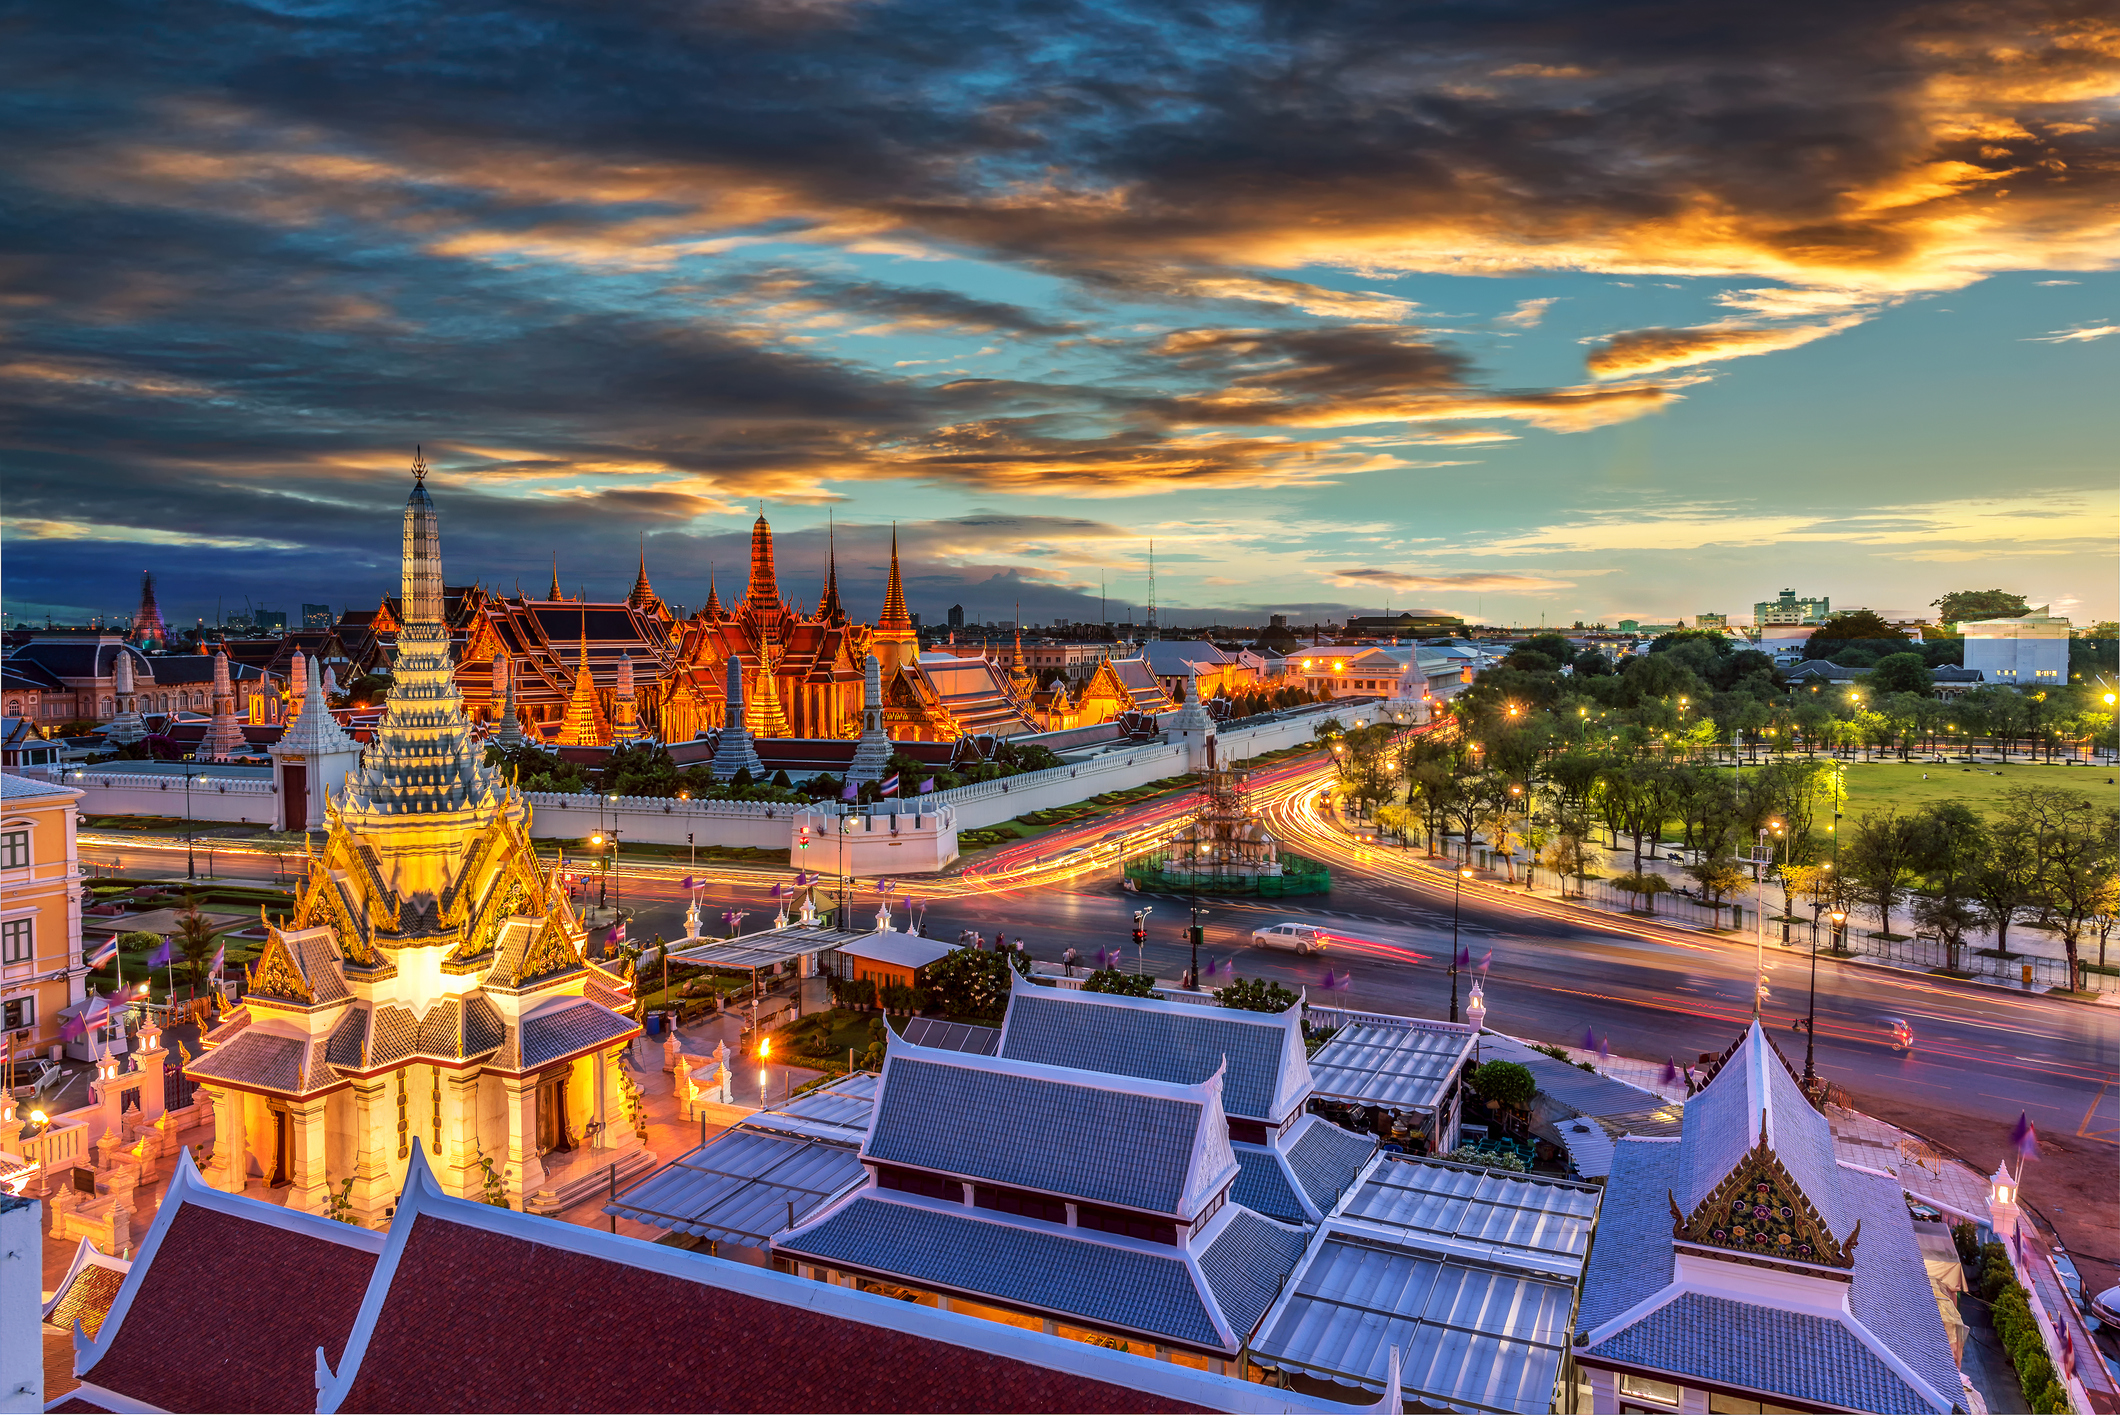 Bangkok Claims Title As Worlds Most Visited City Mastercard - The 10 most popular destination cities in asiapacific for 2015